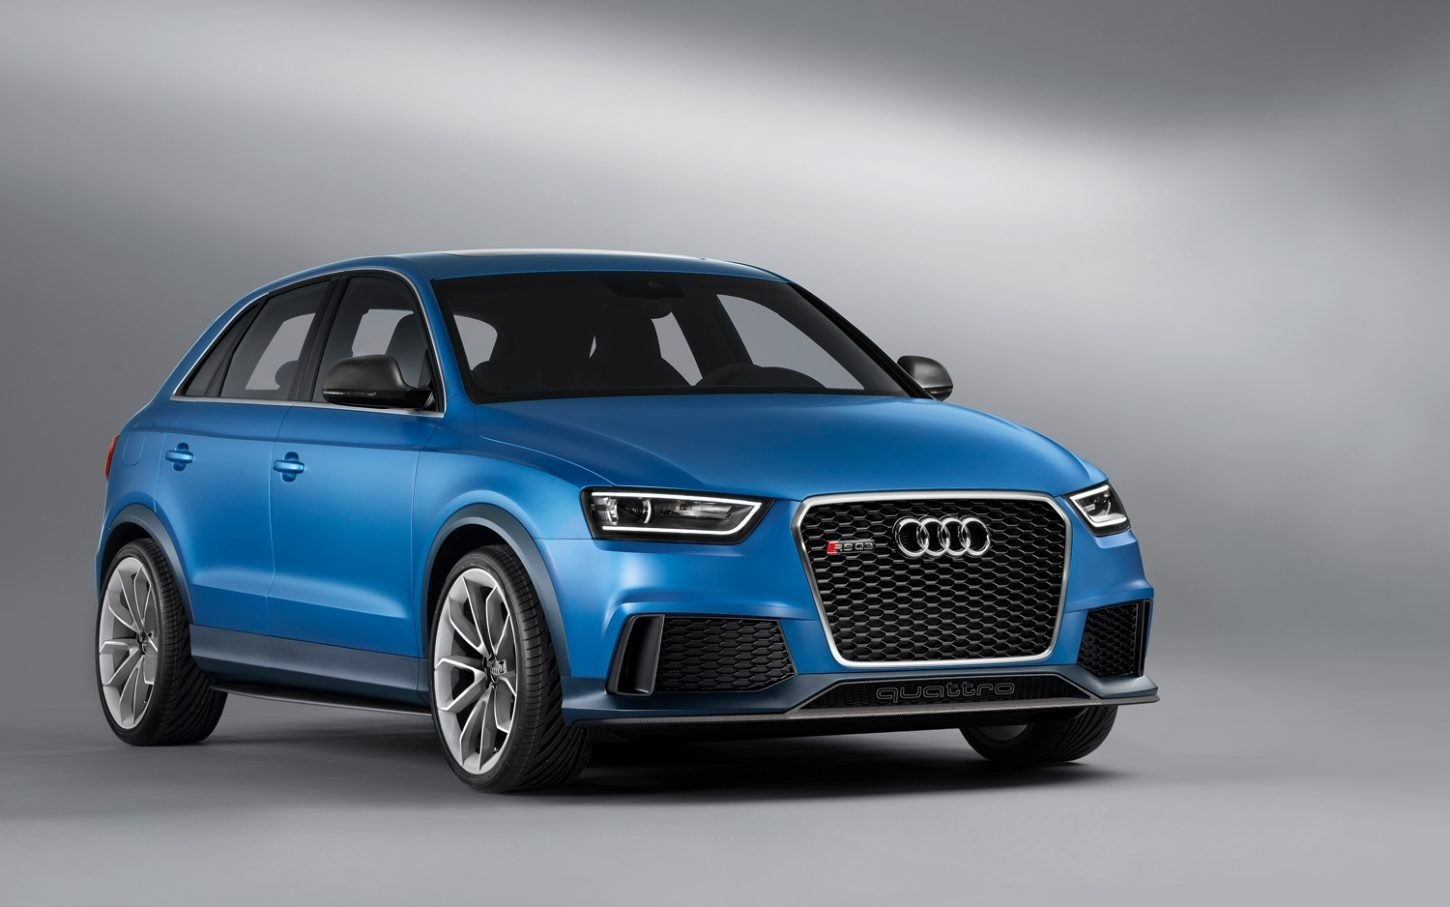 New 2019 Audi Q3 New Design Car Preview And Rumors On This Month